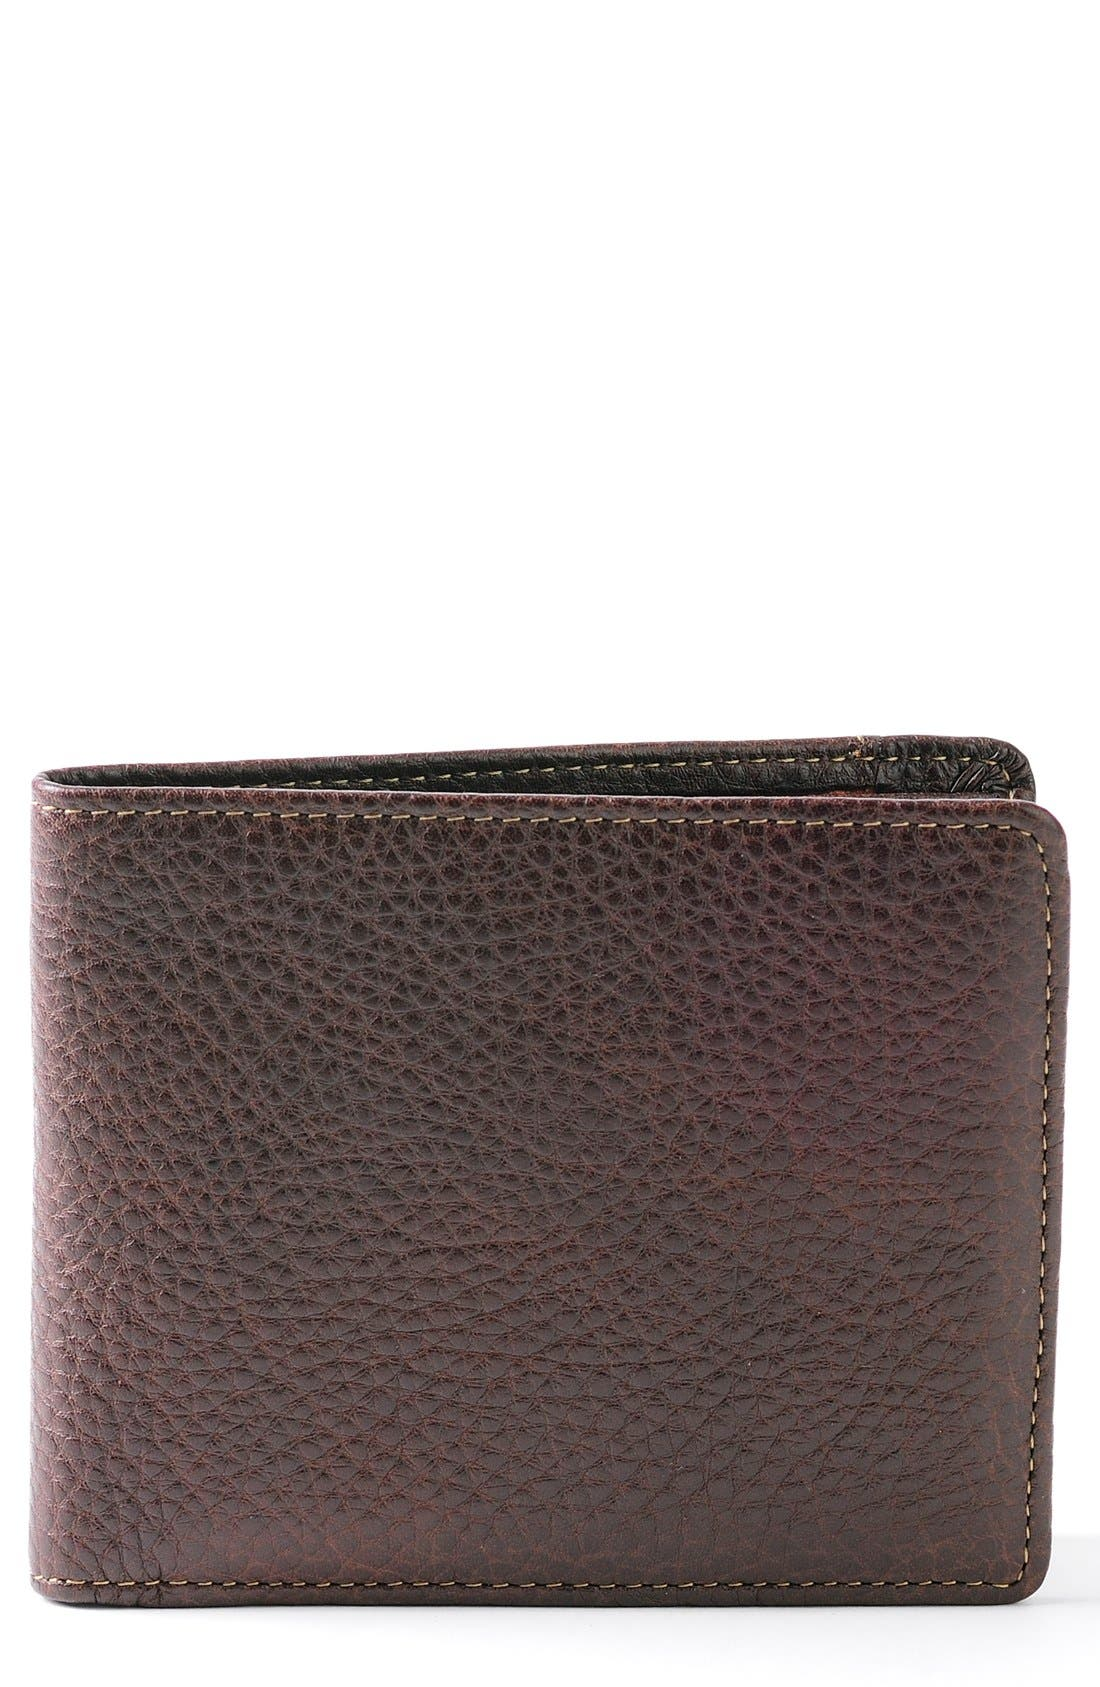 'Tyler' RFID Wallet,                         Main,                         color, Coffee